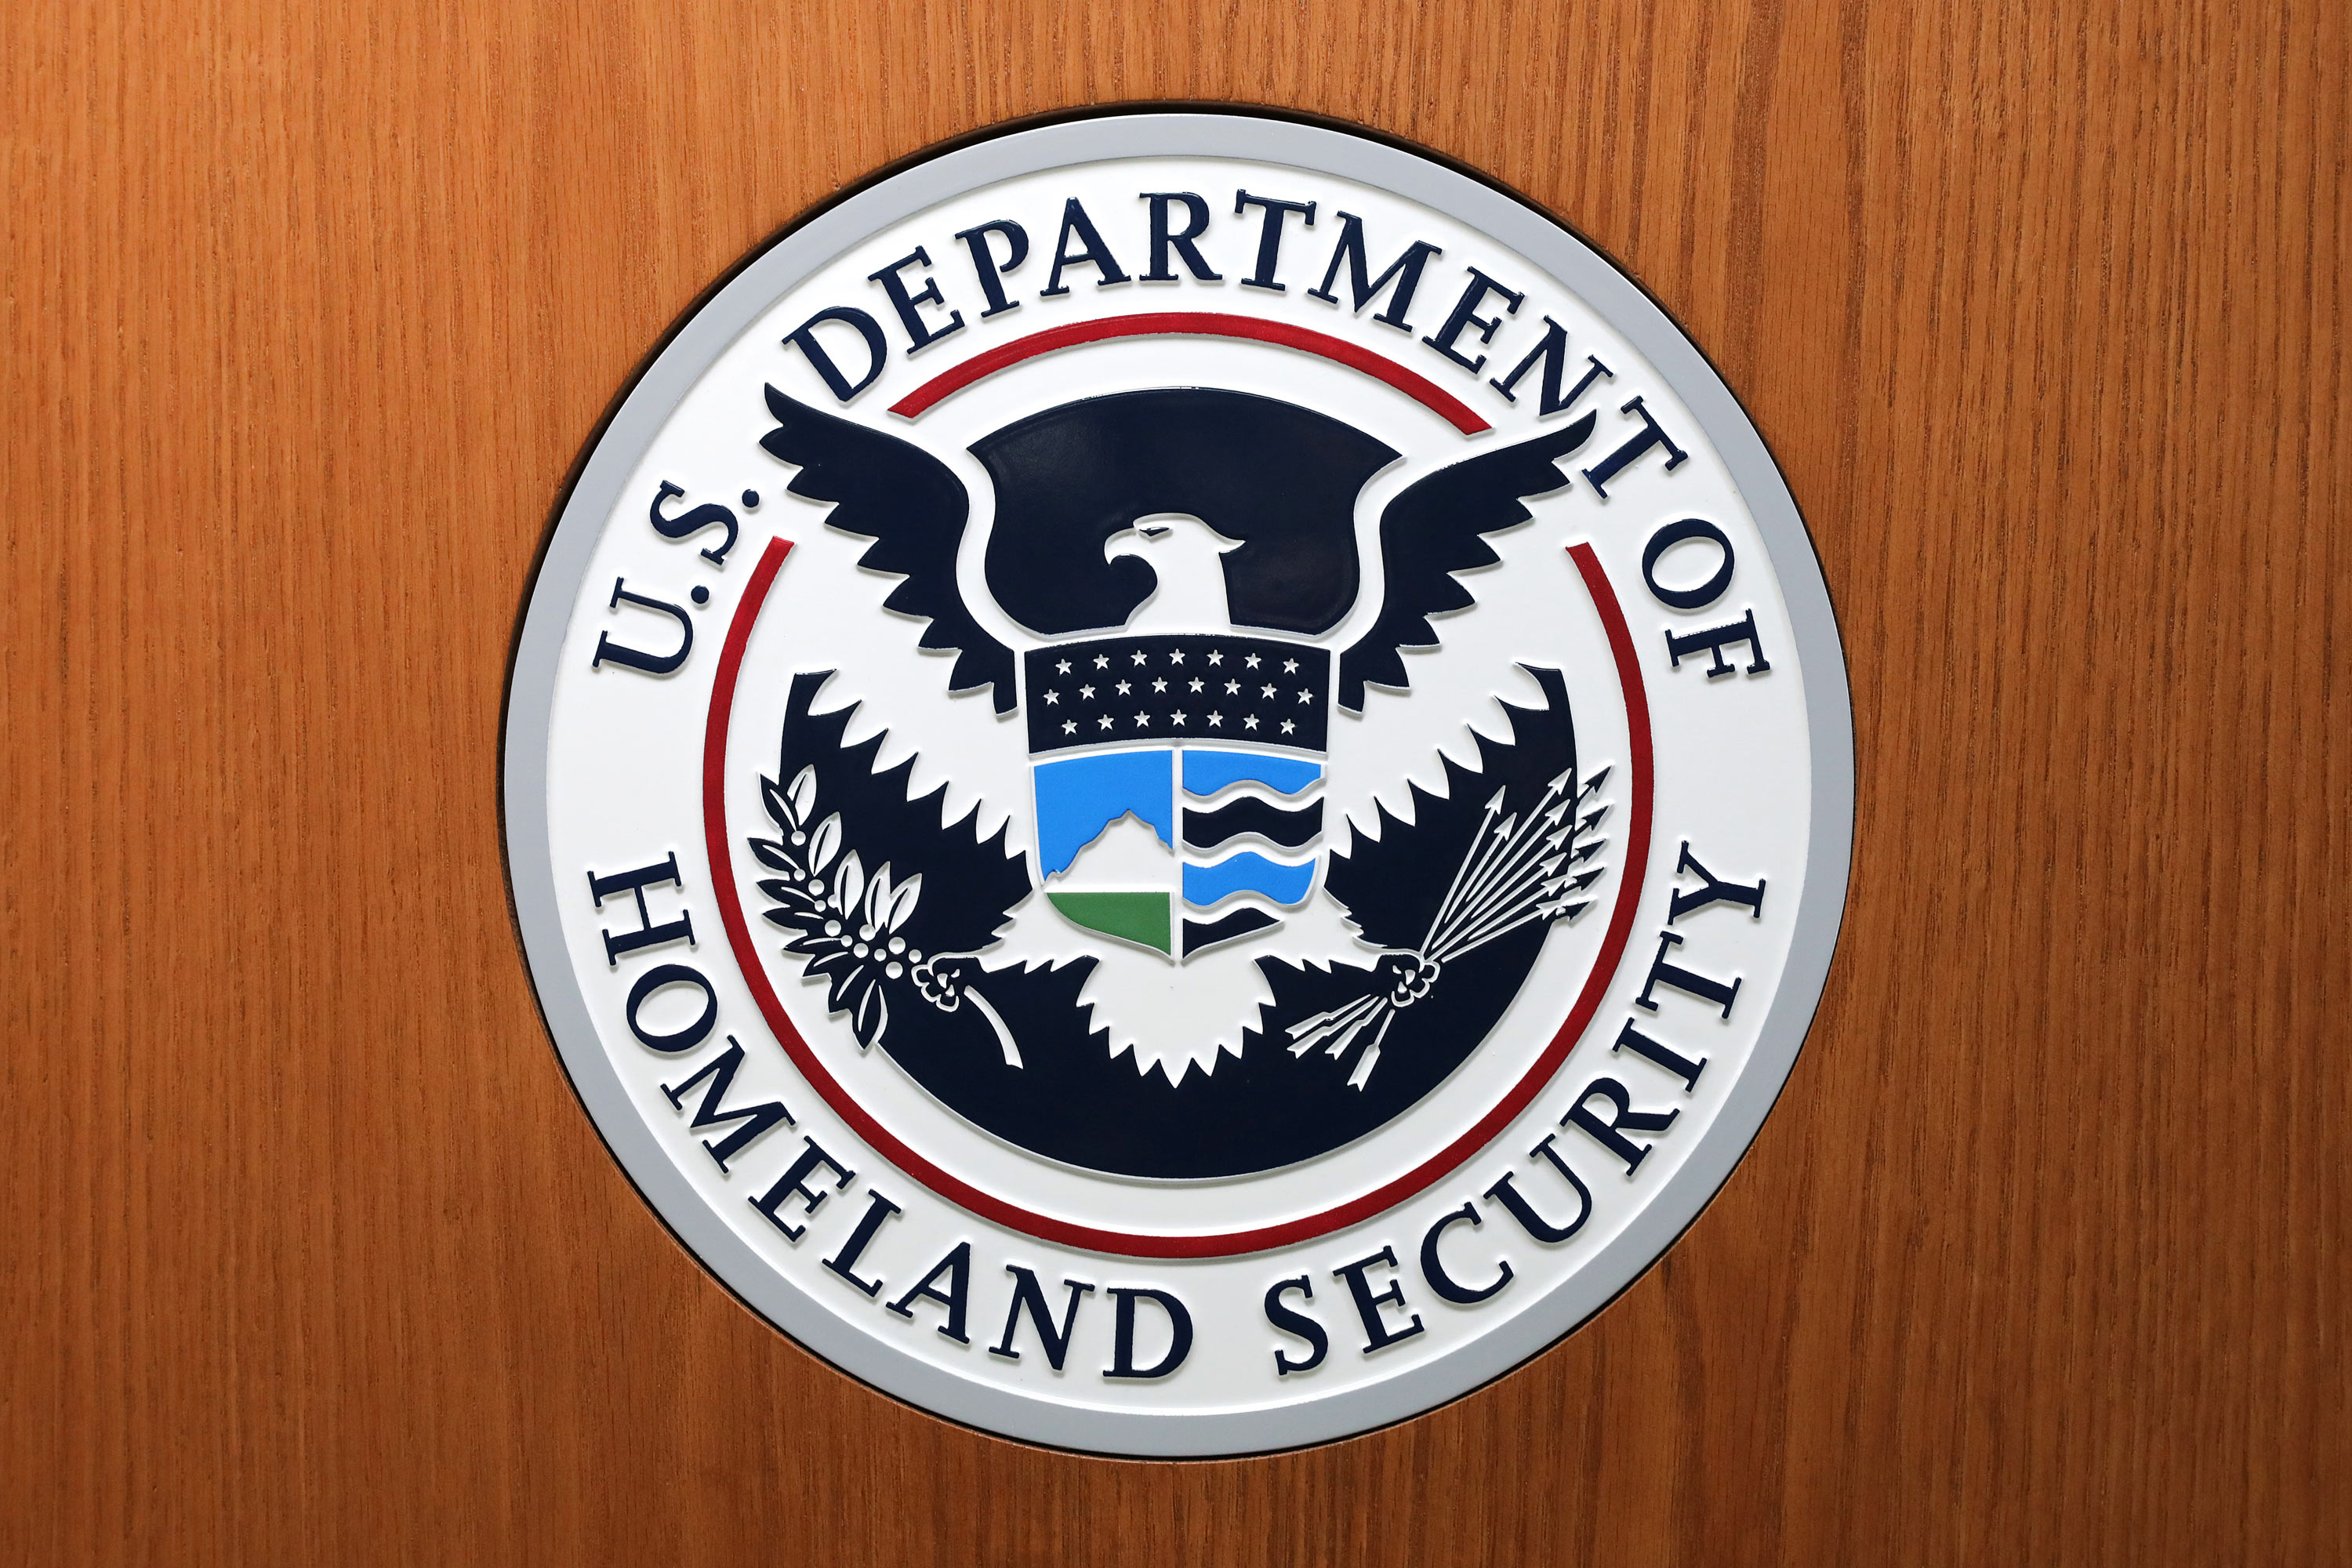 Chronic leadership problems have plagued oversight of DHS inspector general's office, GAO finds